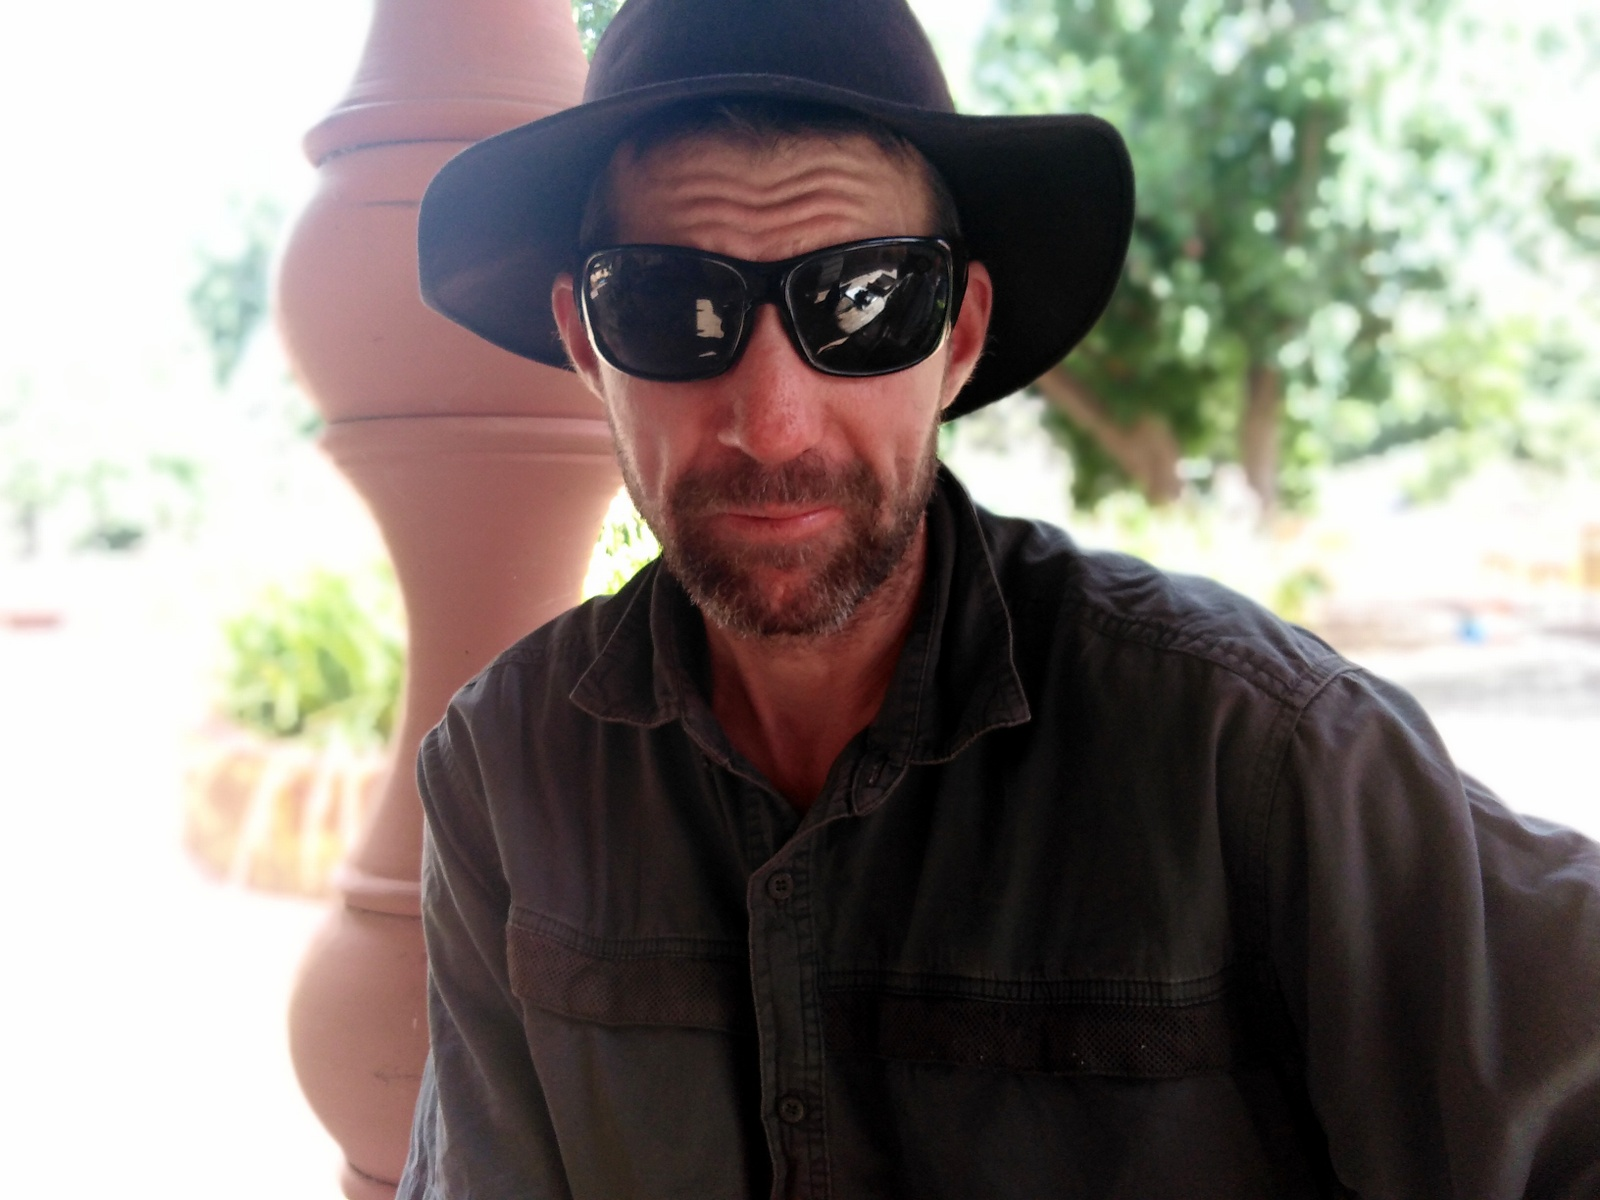 Anti-CSG activist and third-generation farmer Brett Hopkinson, formerly known as Brett Sanders